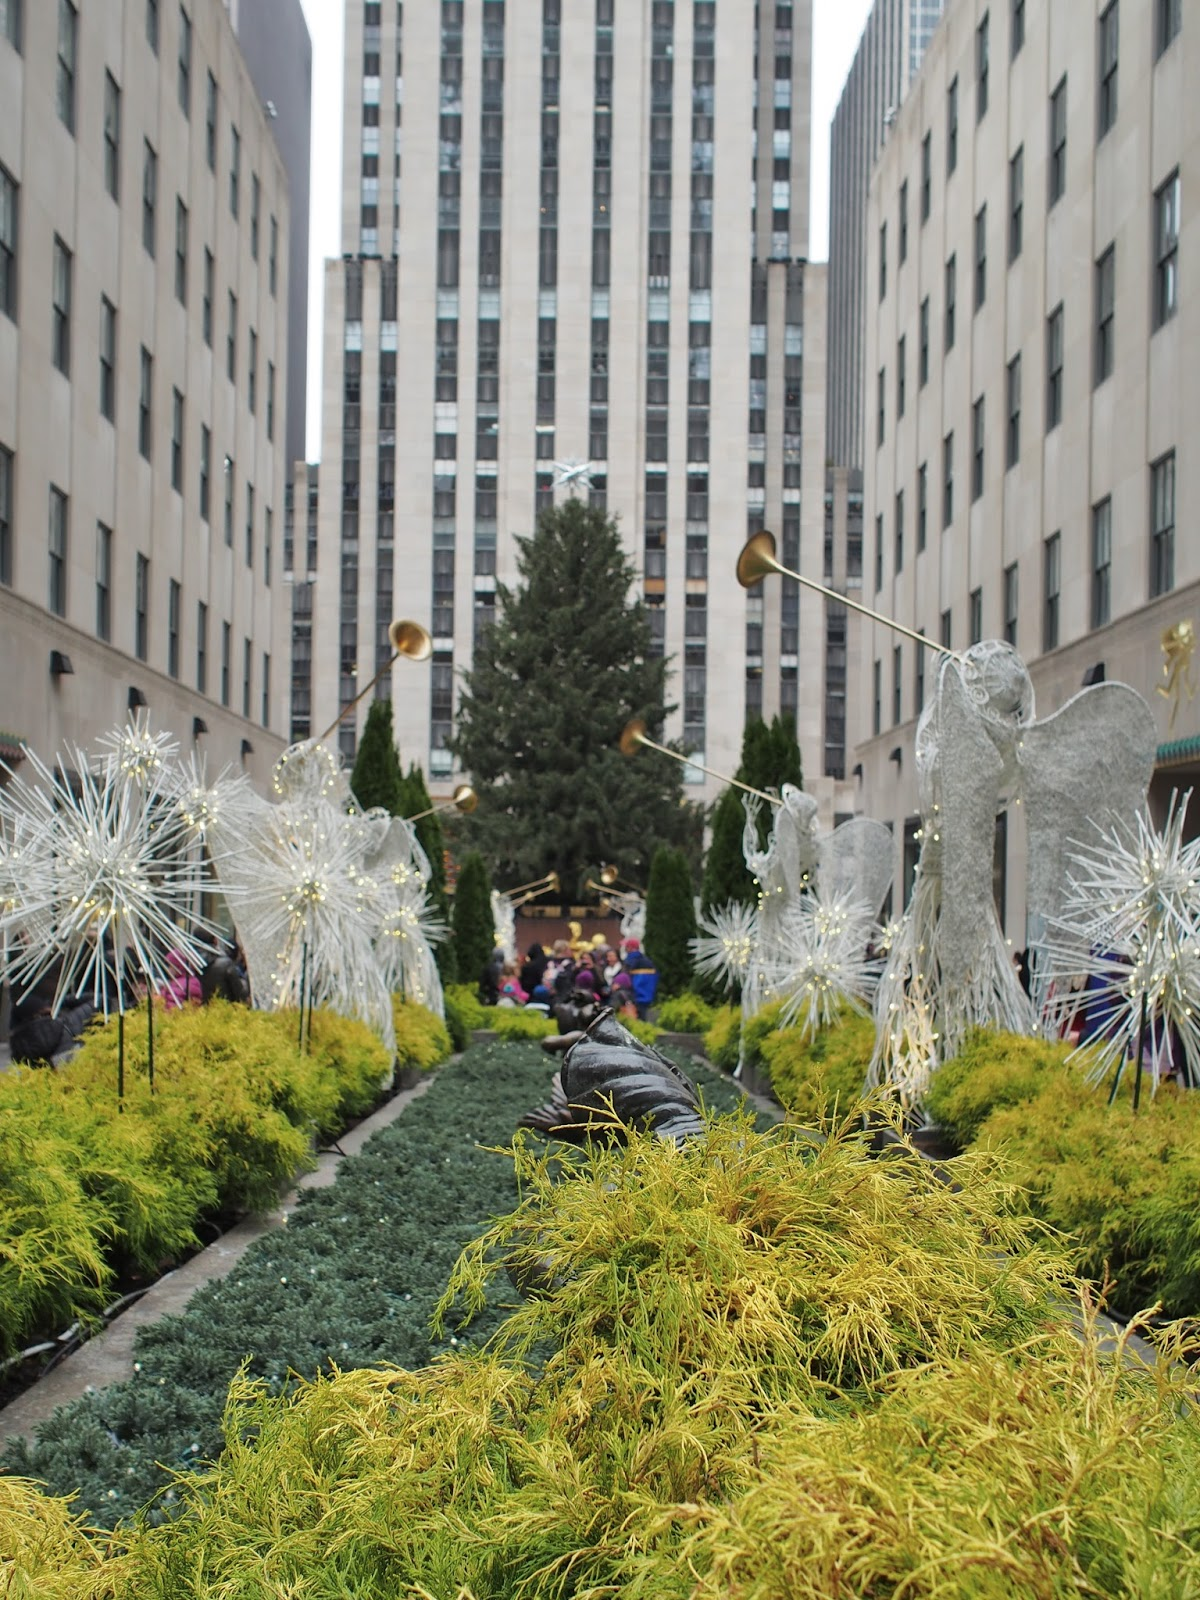 Tree Unadorned, #treeunadorned #rockcenter #rockefellercenter #christmastree 2014